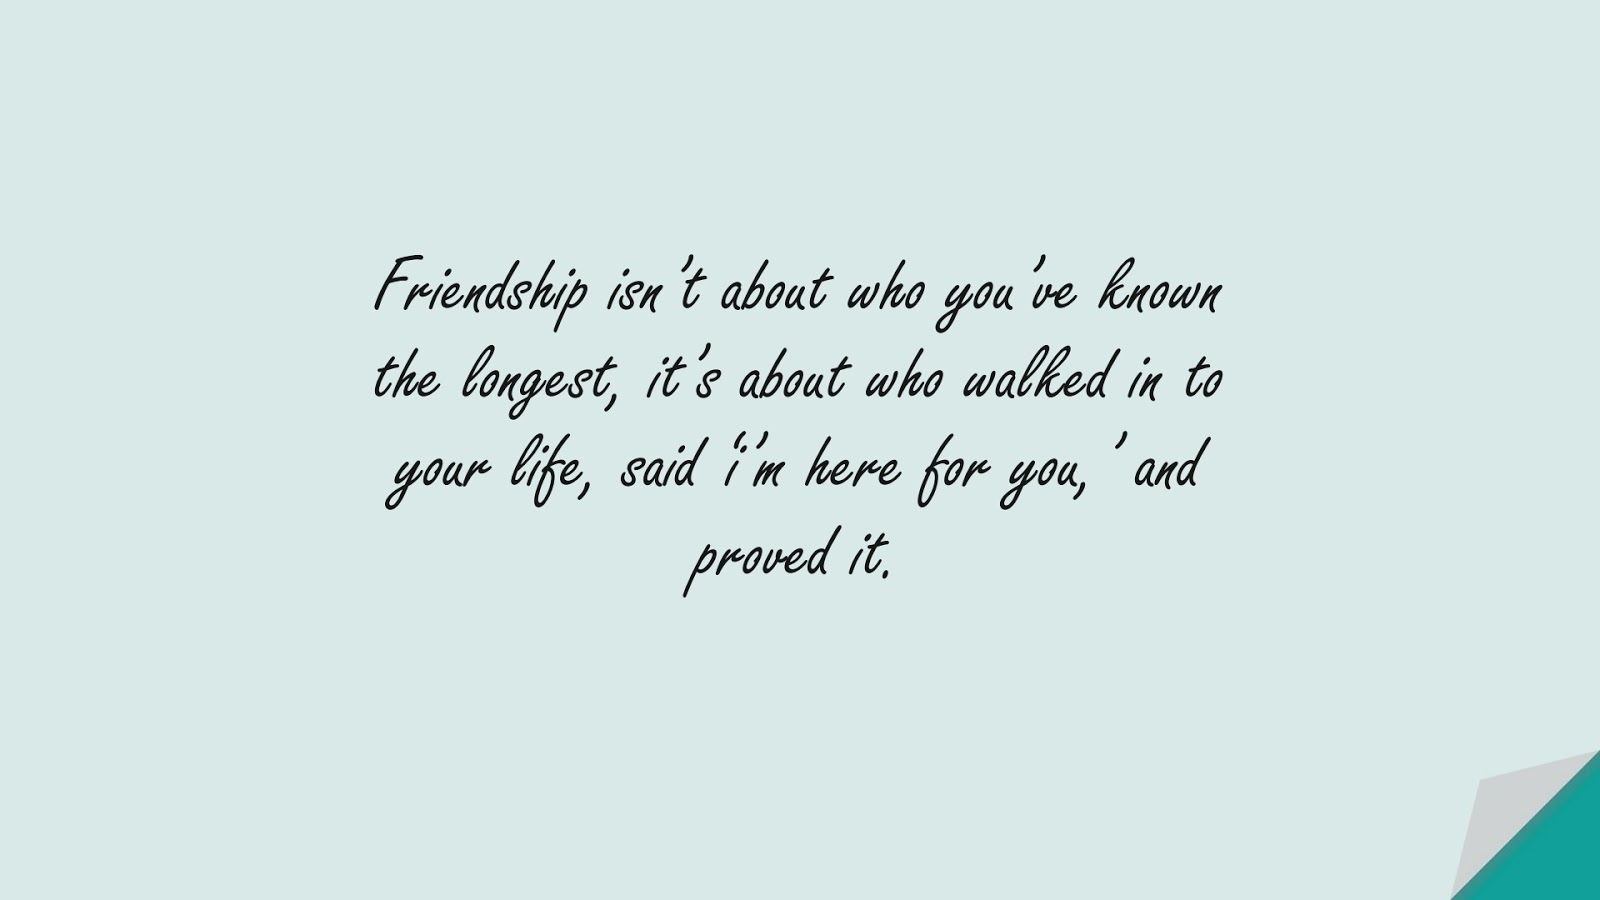 Friendship isn't about who you've known the longest, it's about who walked in to your life, said 'i'm here for you,' and proved it.FALSE